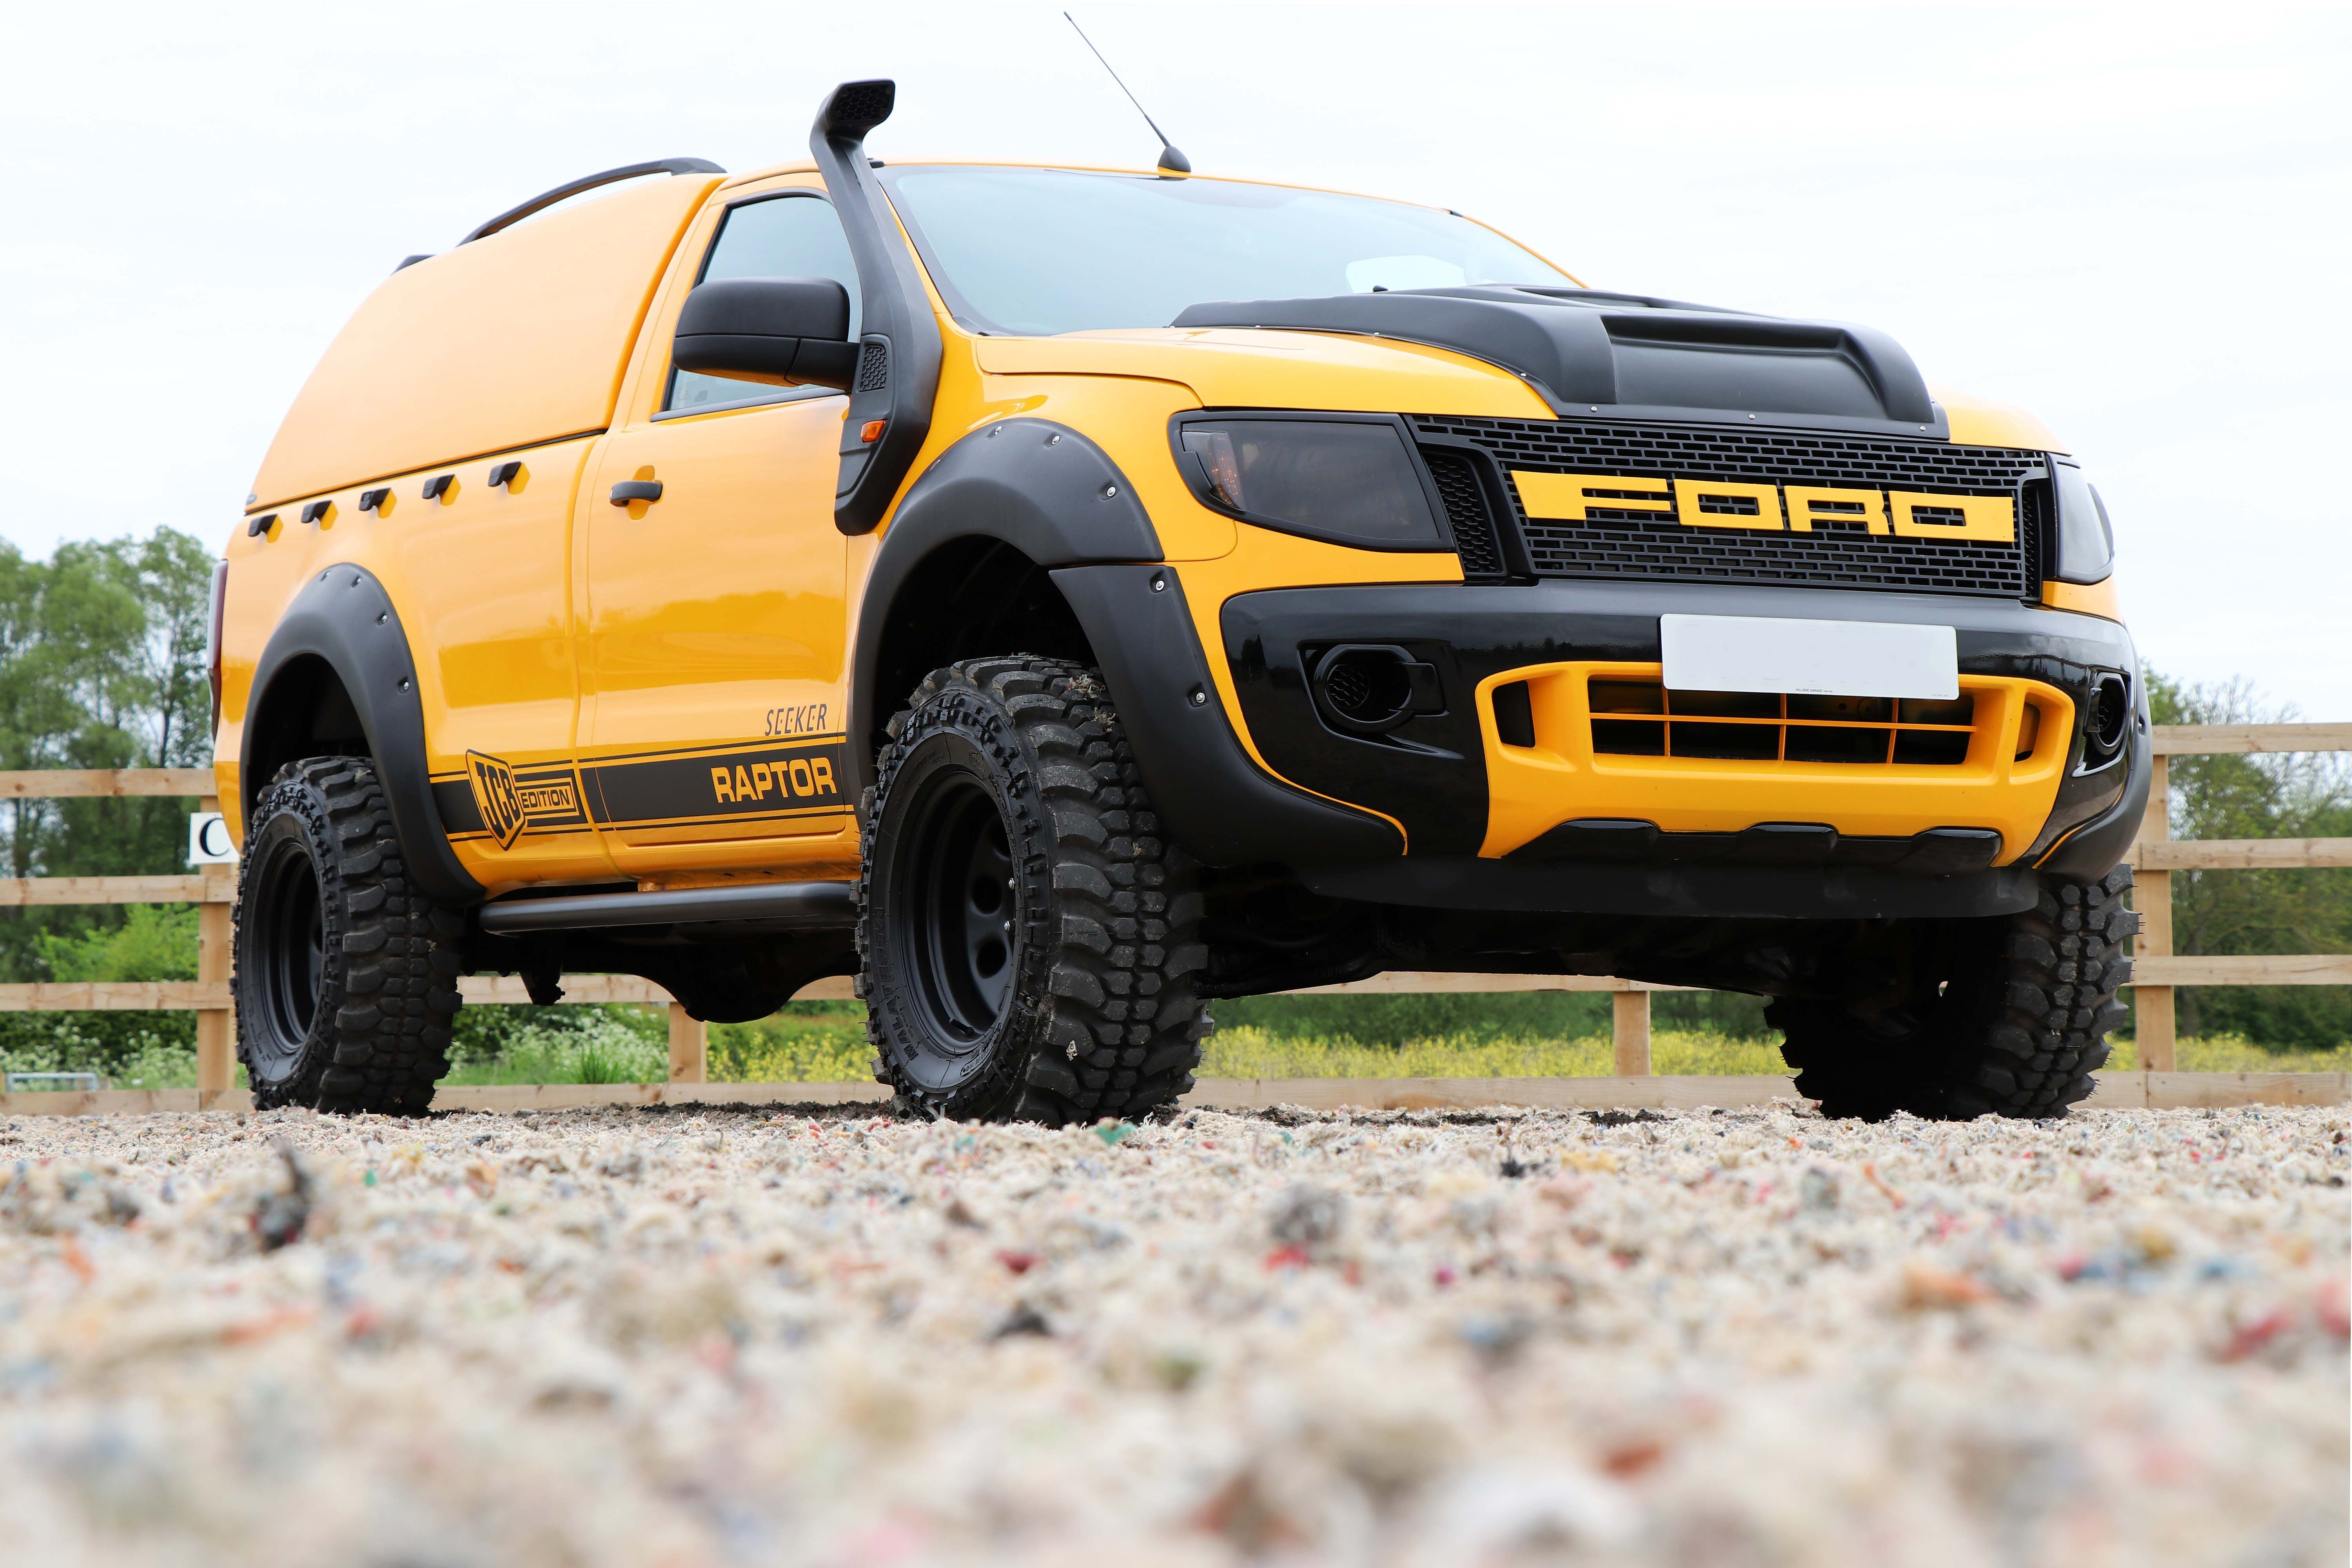 SEEKER Raptor Digger Yellow Edition launched